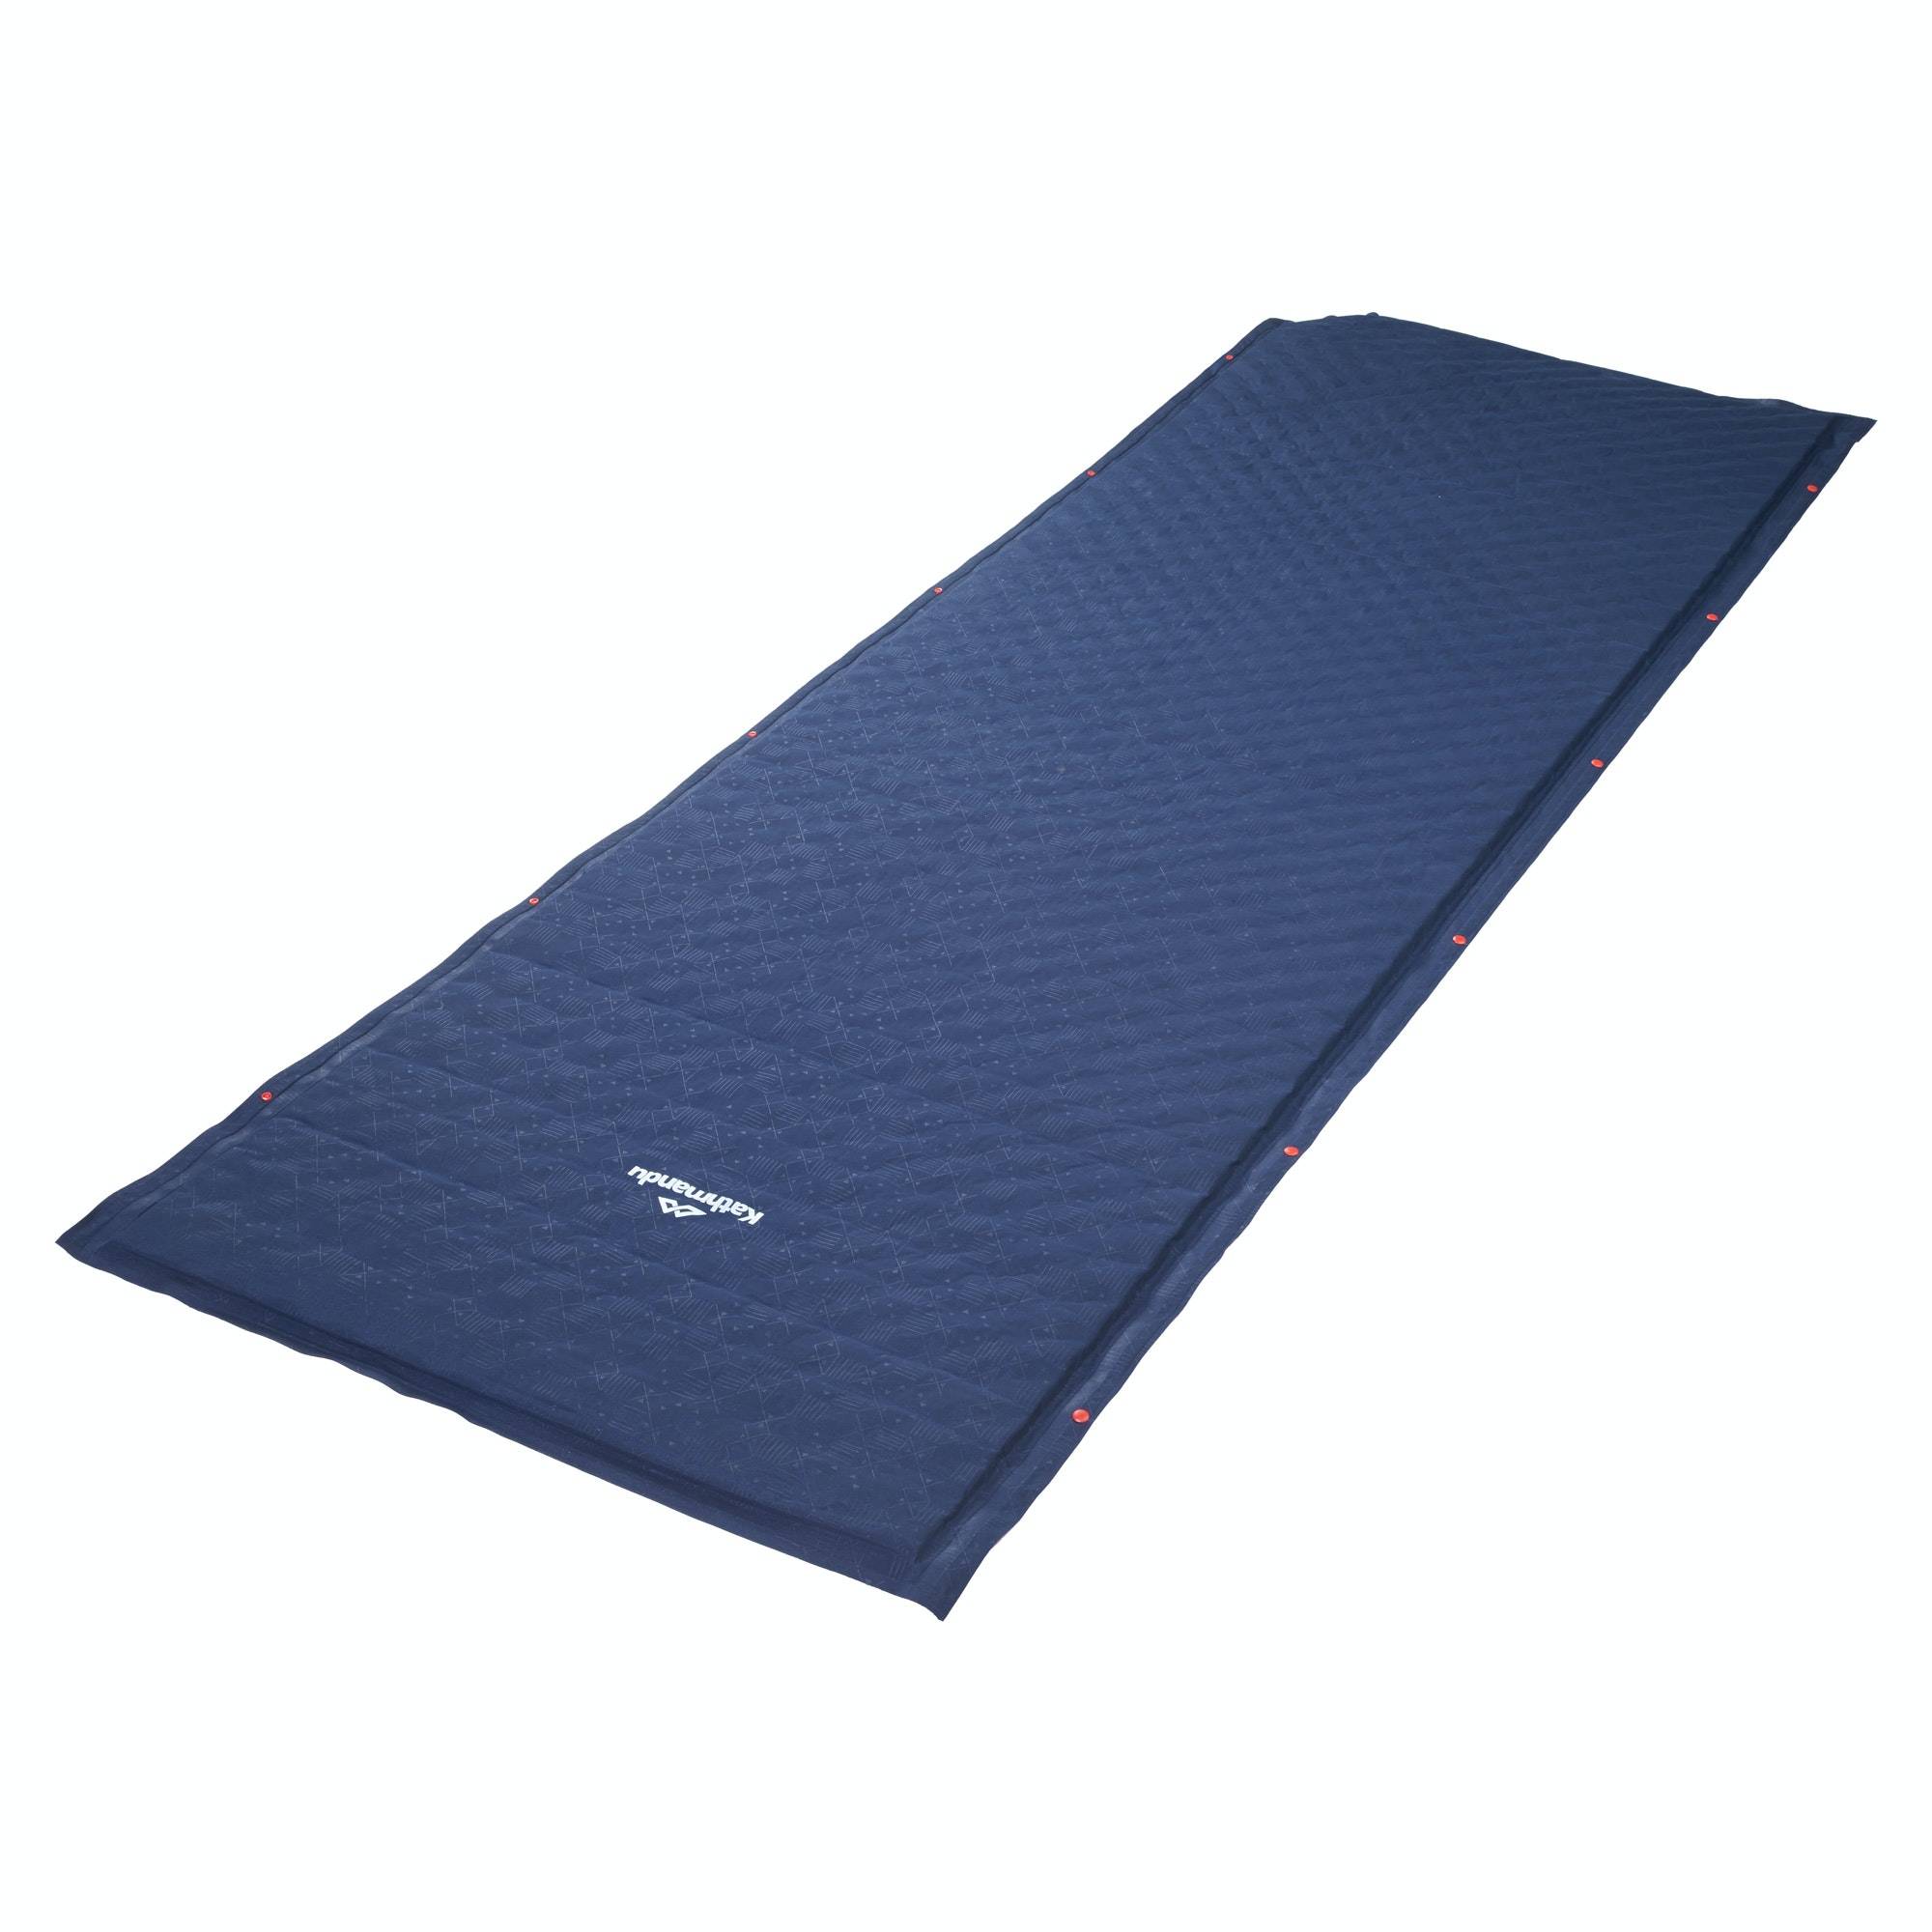 Kathmandu Retreat Self Inflating Mat 3 Season Camping